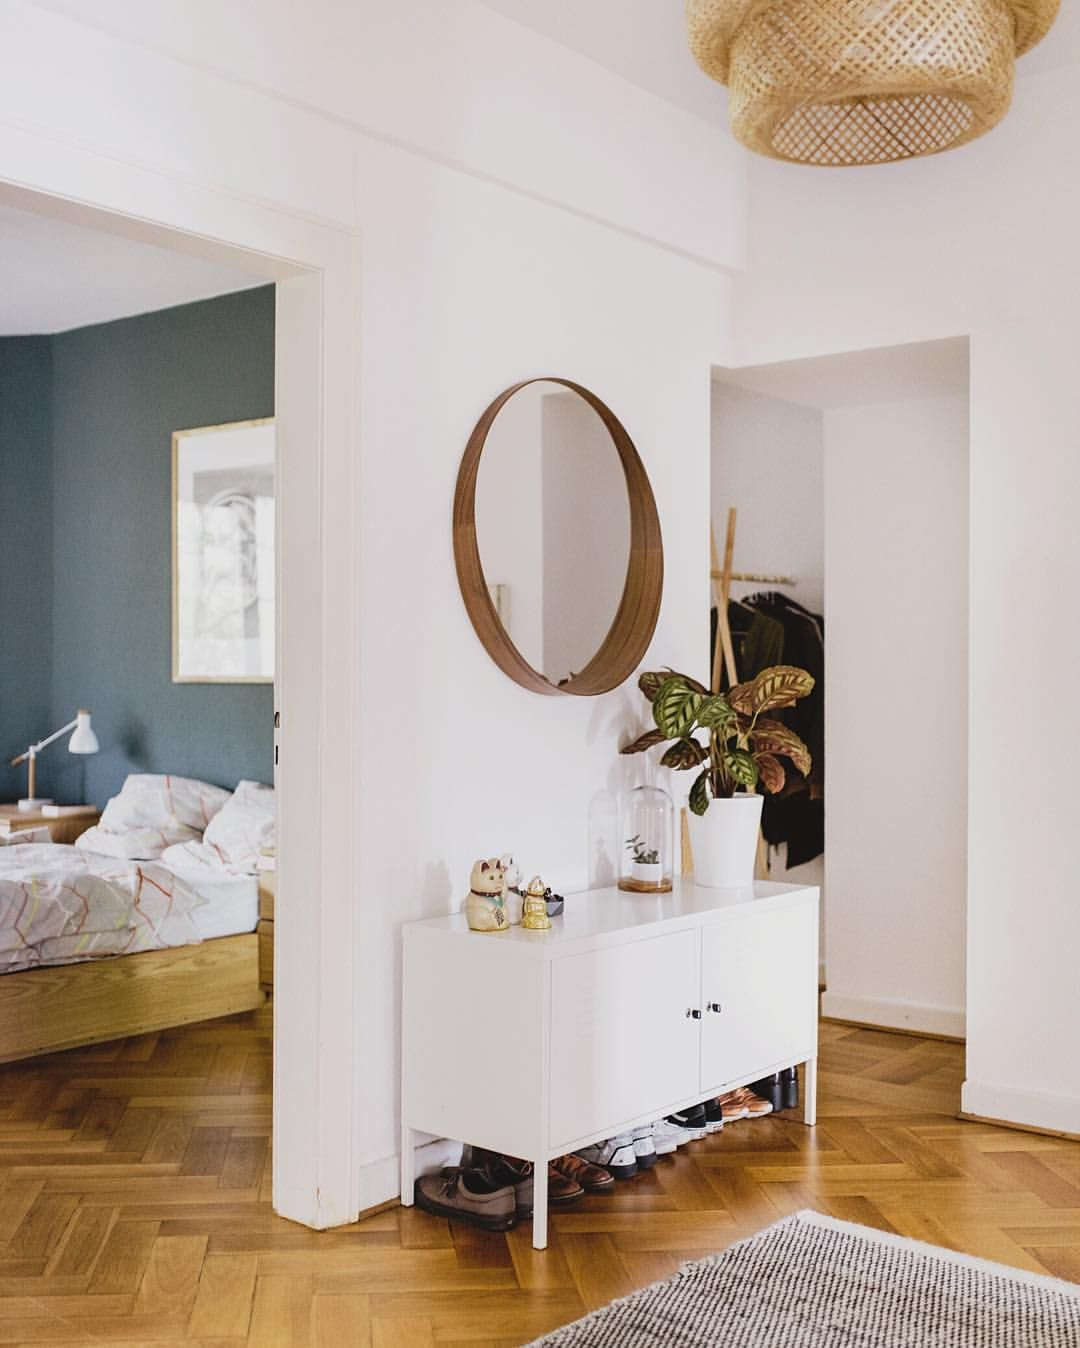 Ikea Off White Rug Canada: Ikea 'PS 2012' Cabinet & 'Stockholm' Mirror